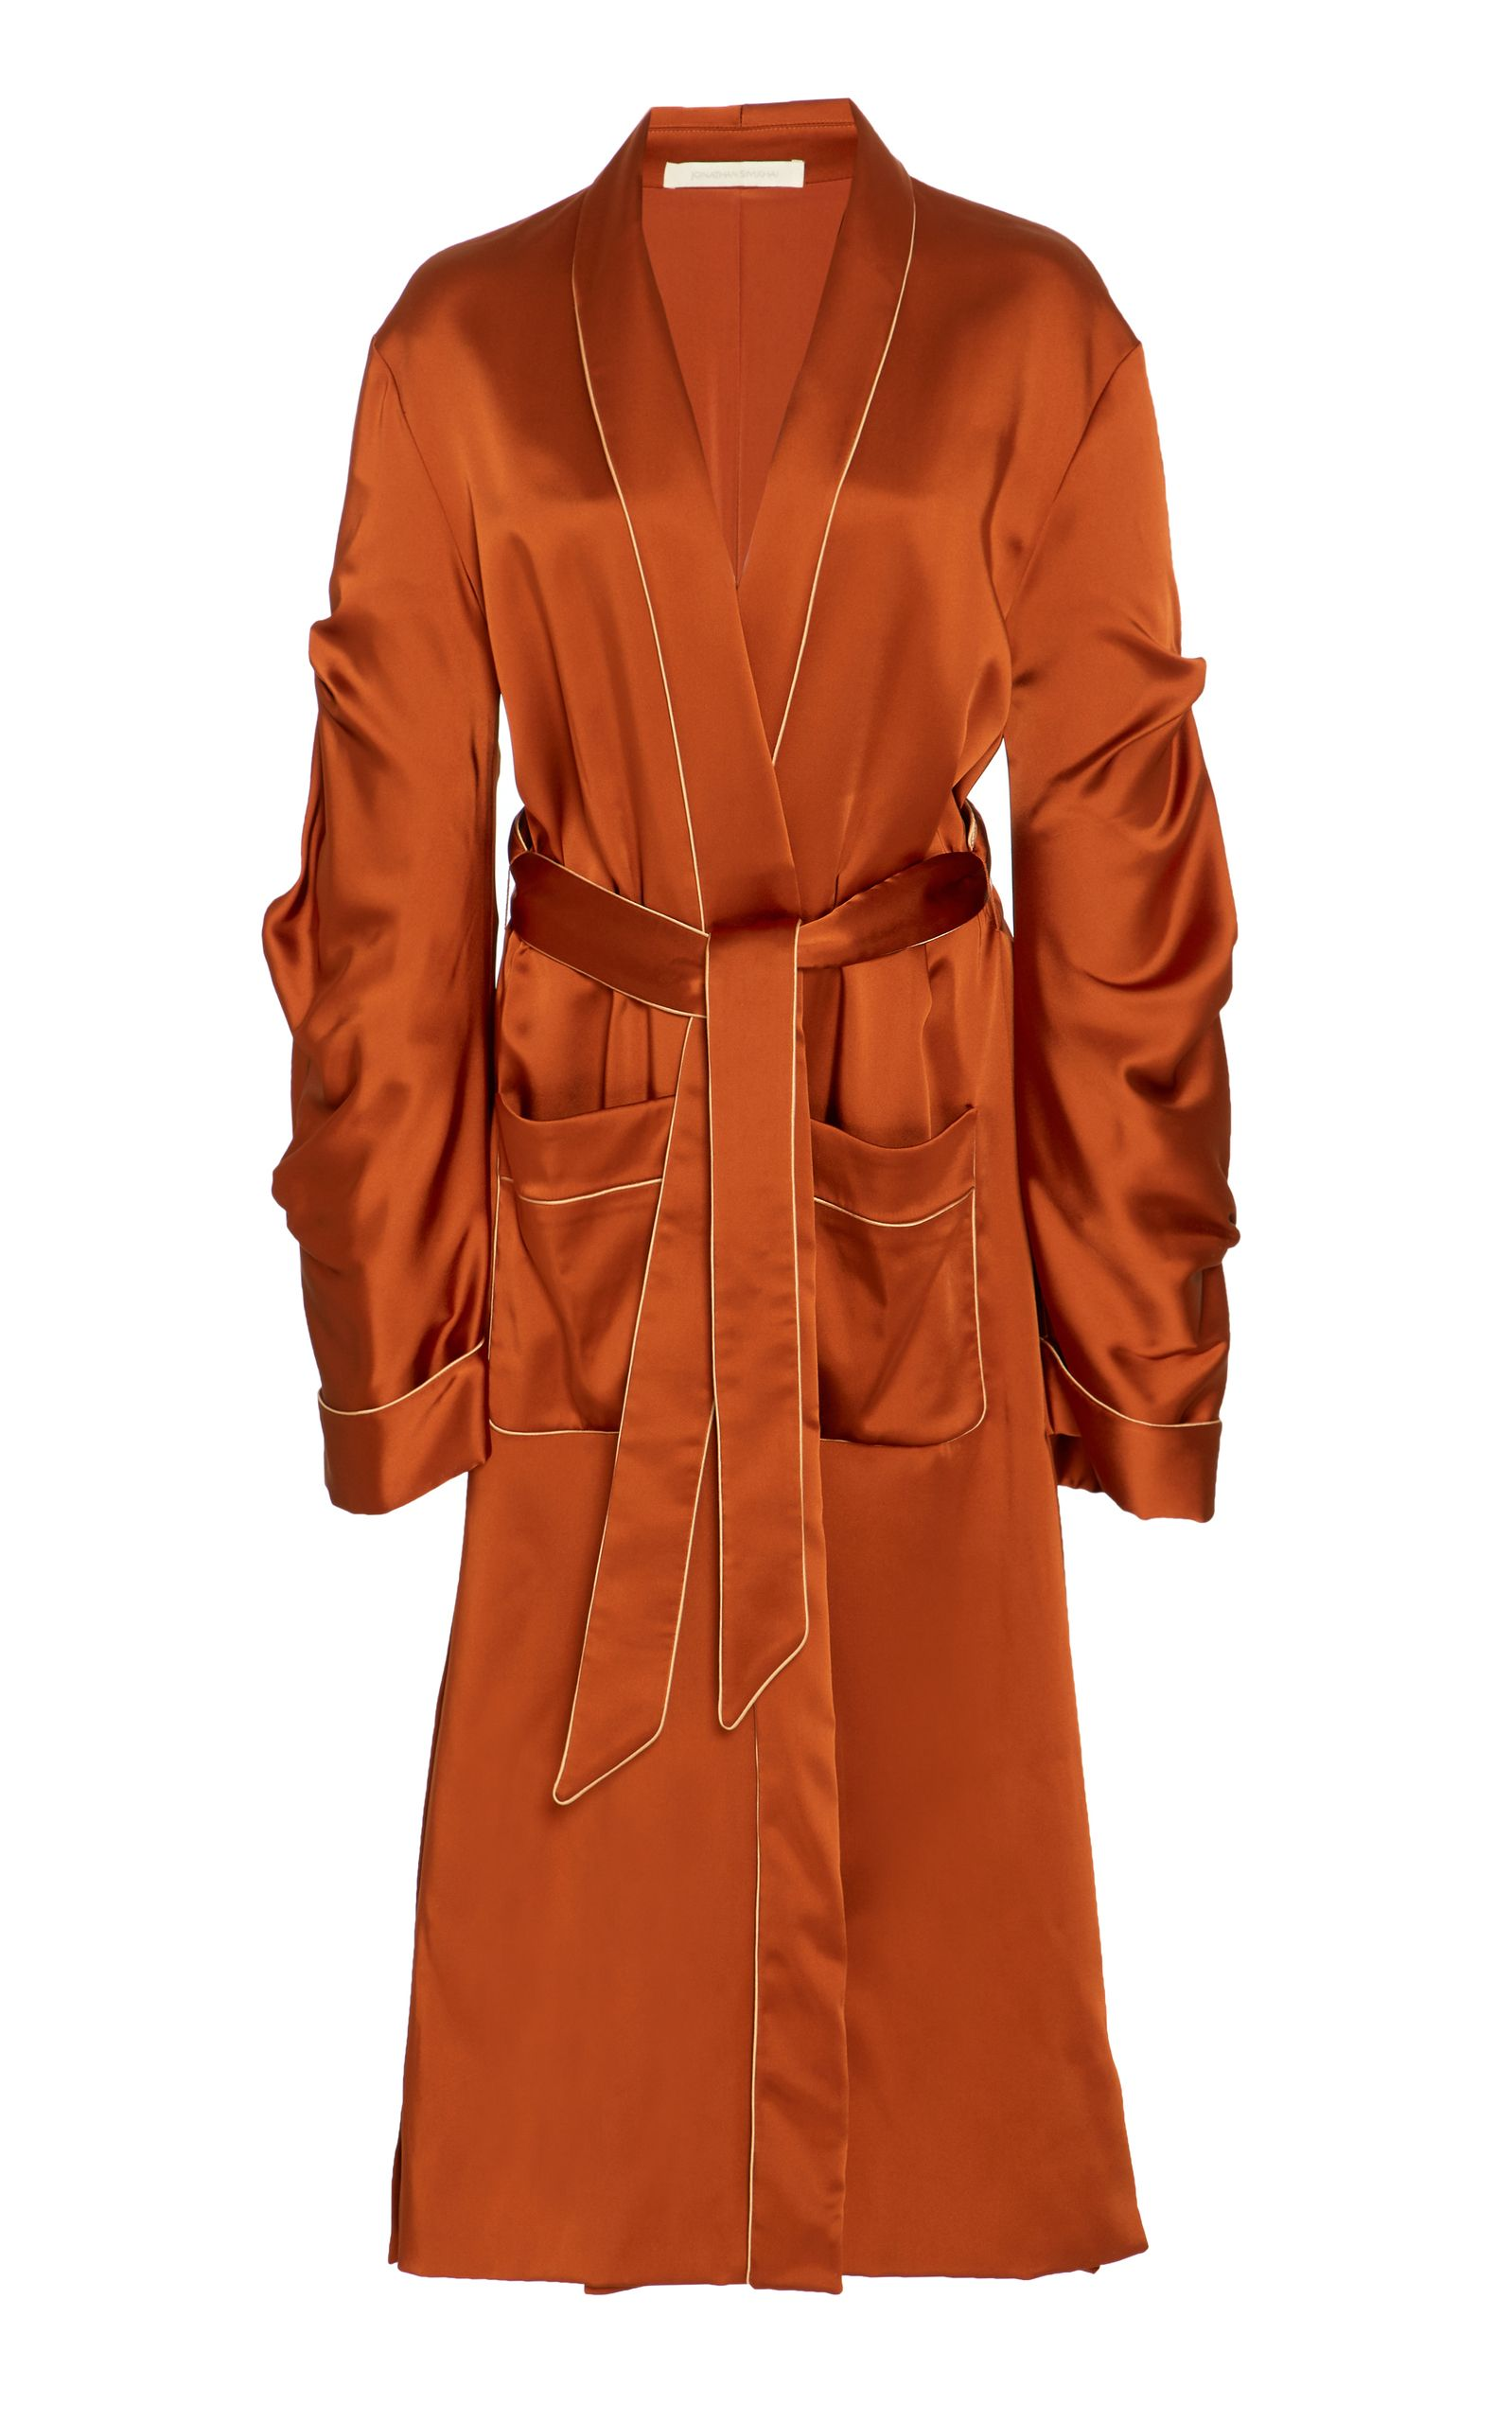 Trench Simkhai Jonathan jonathansimkhai Satin Coat Fluid cloth wPnq8x6